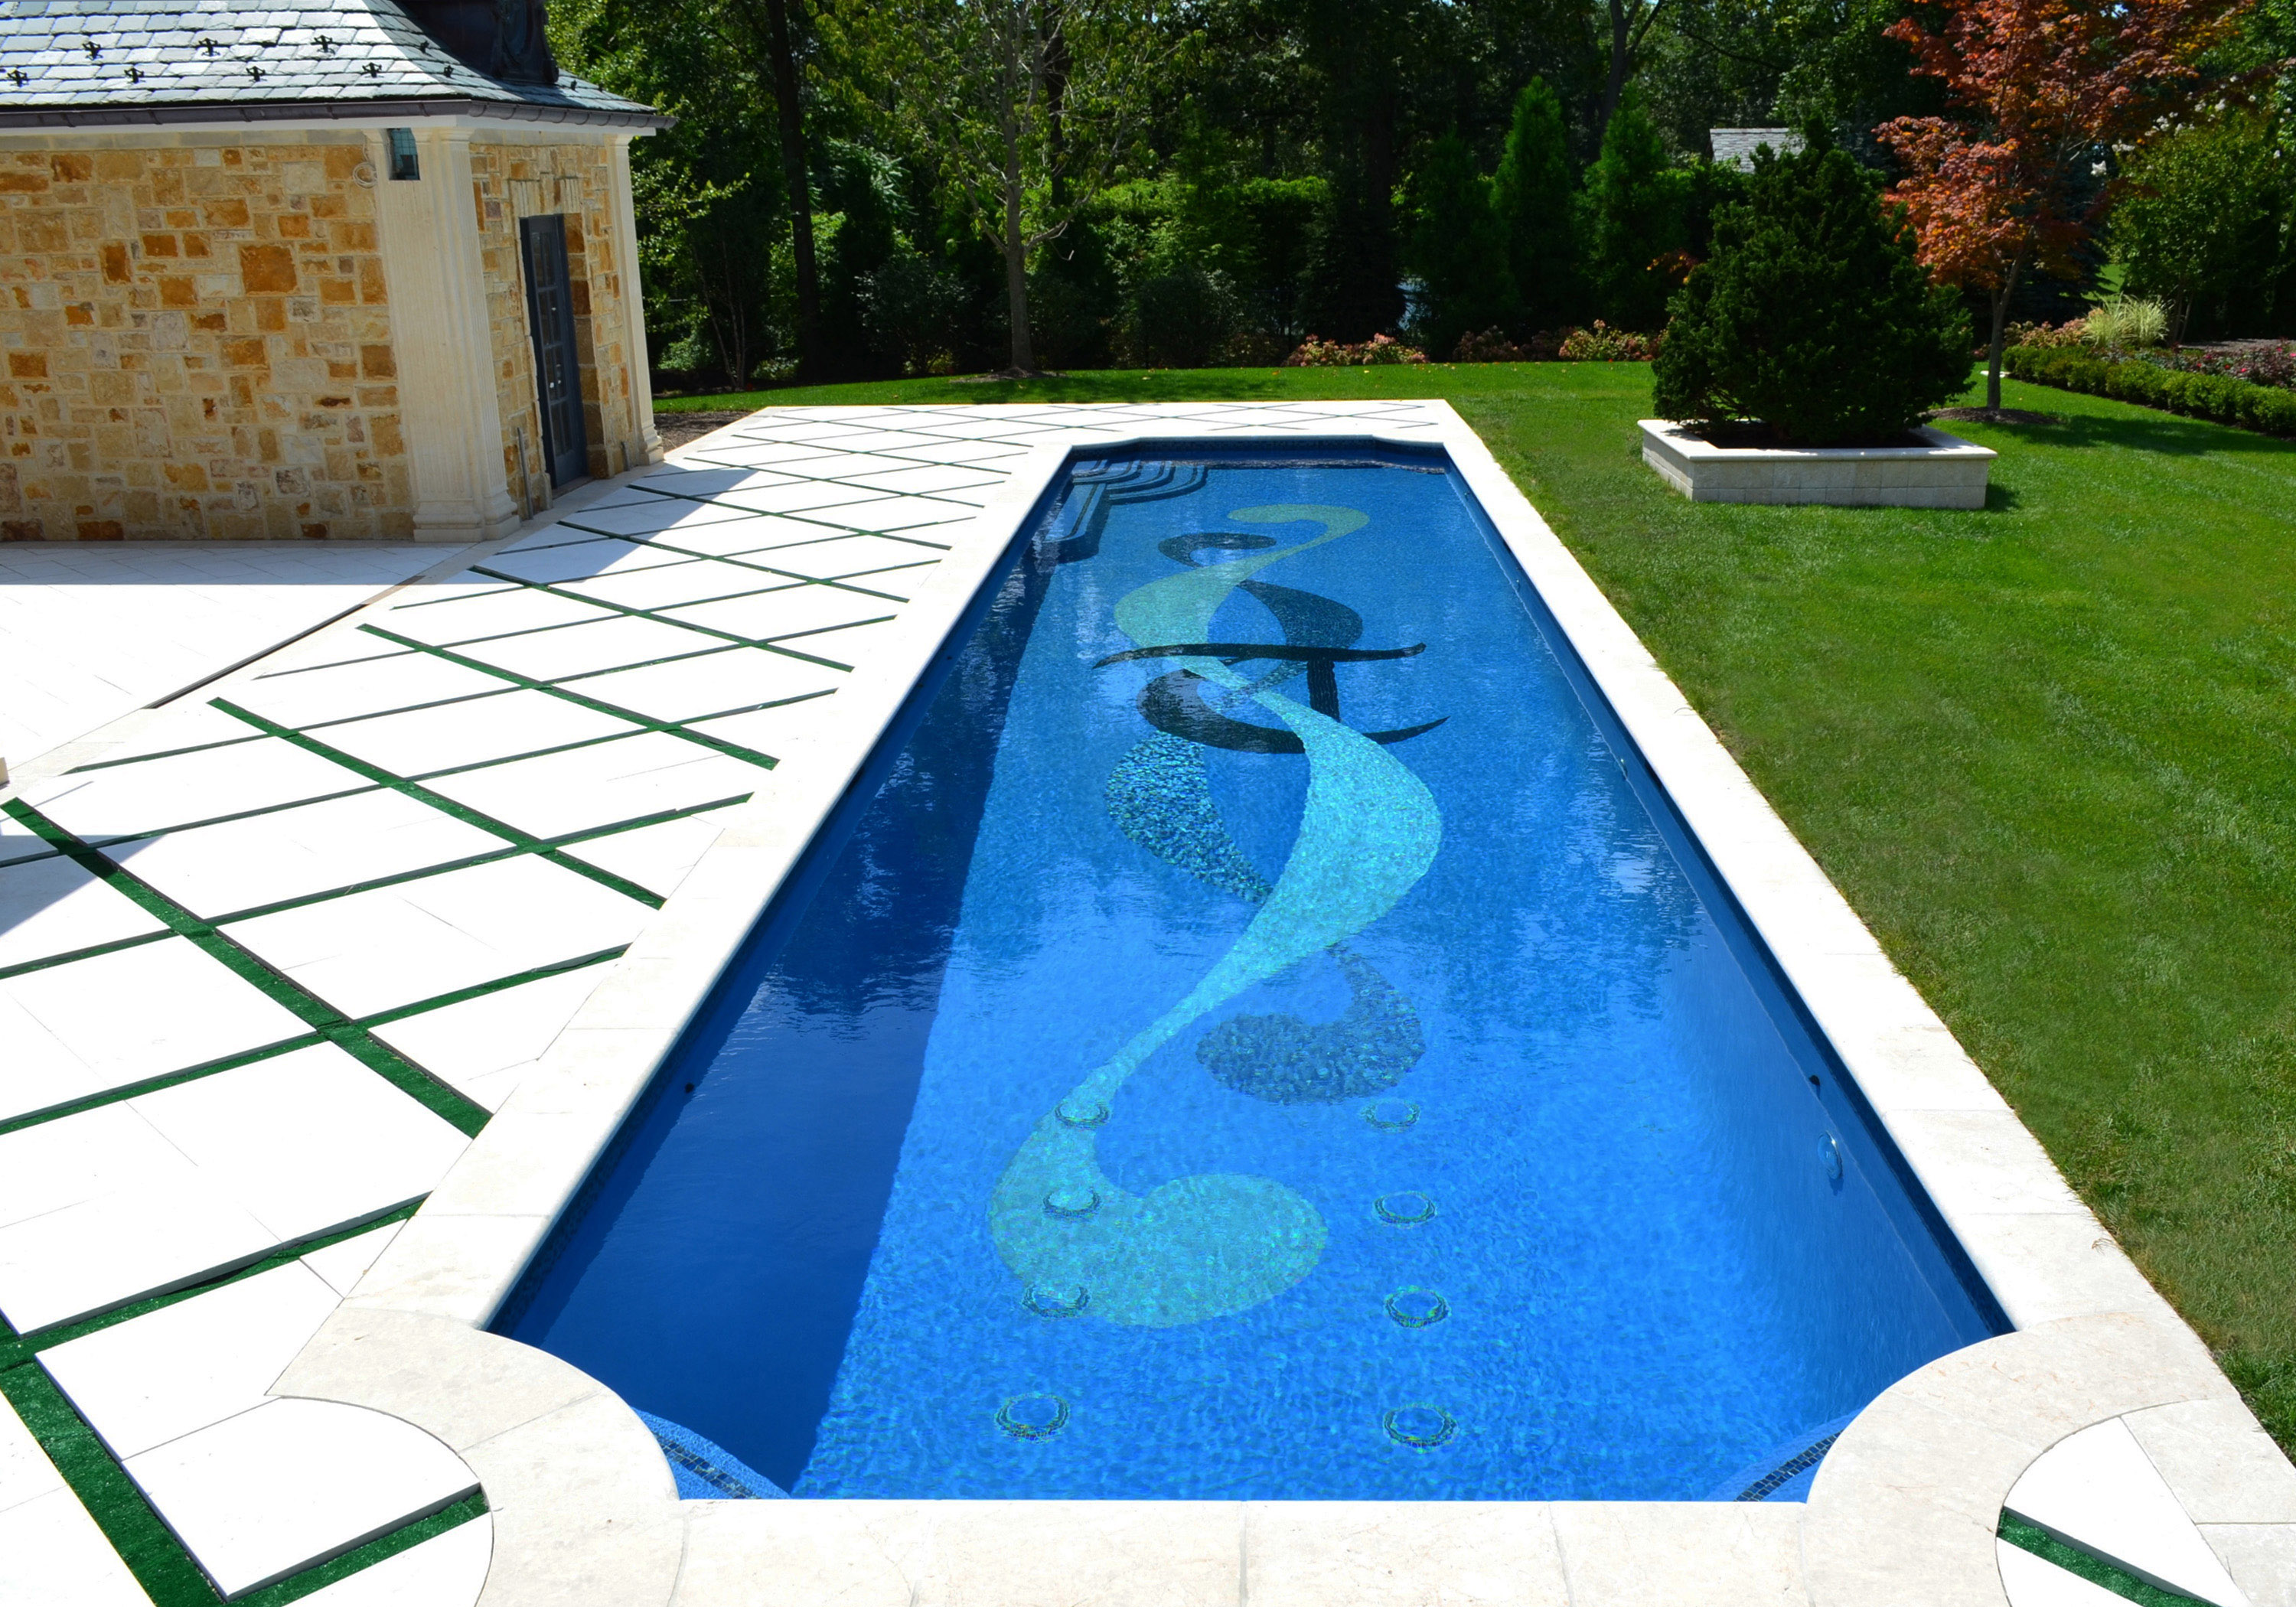 Bergen county nj landscape architecture office wins 2013 for Pool design shapes